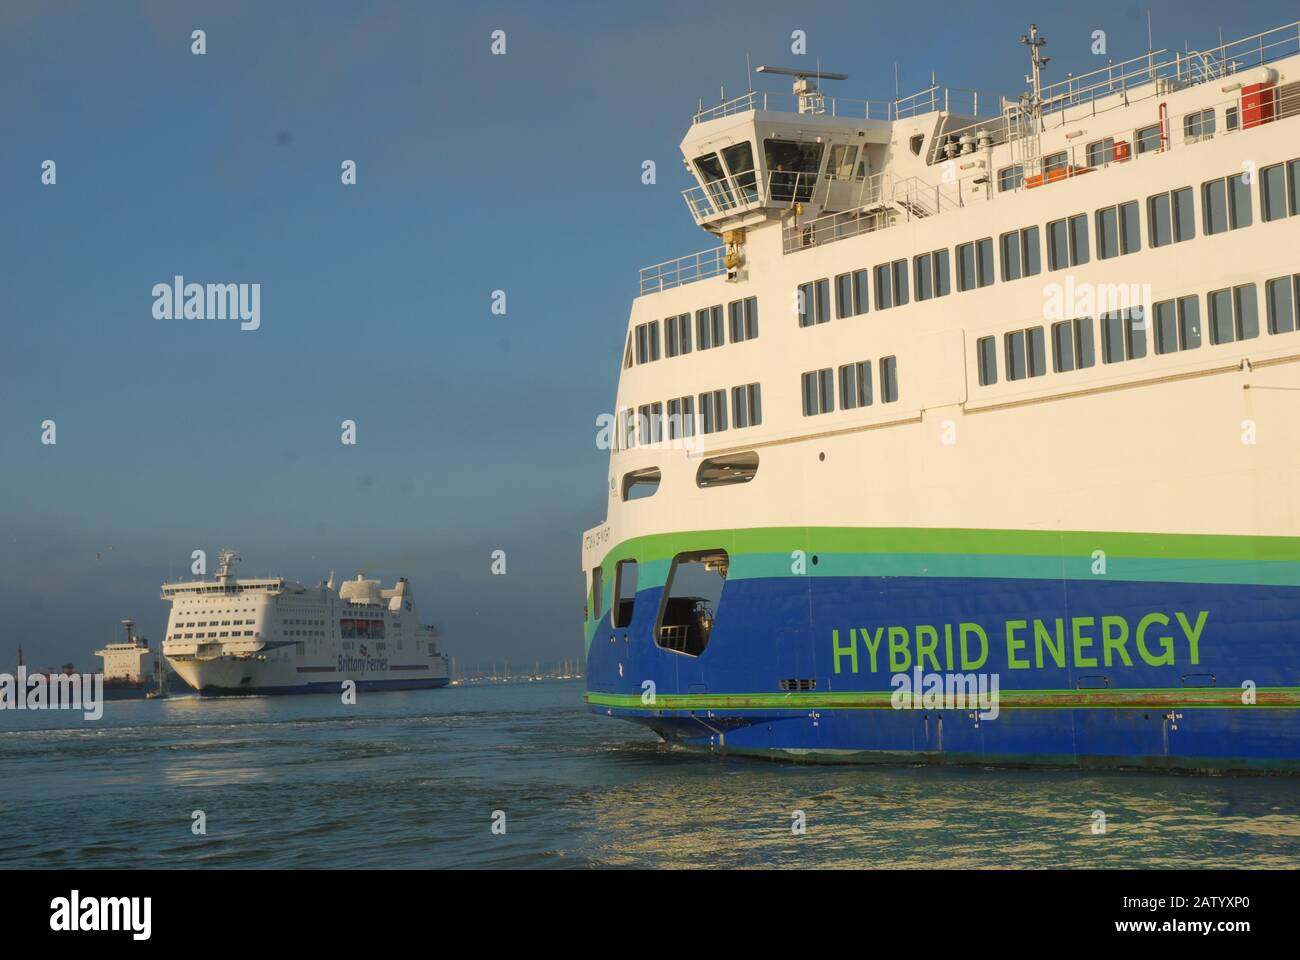 Isle of Wight Car Ferry 'Victoria Of Wight' entering Portsmouth Harbour, Portsmouth, Hampshire, England, UK. Stock Photo